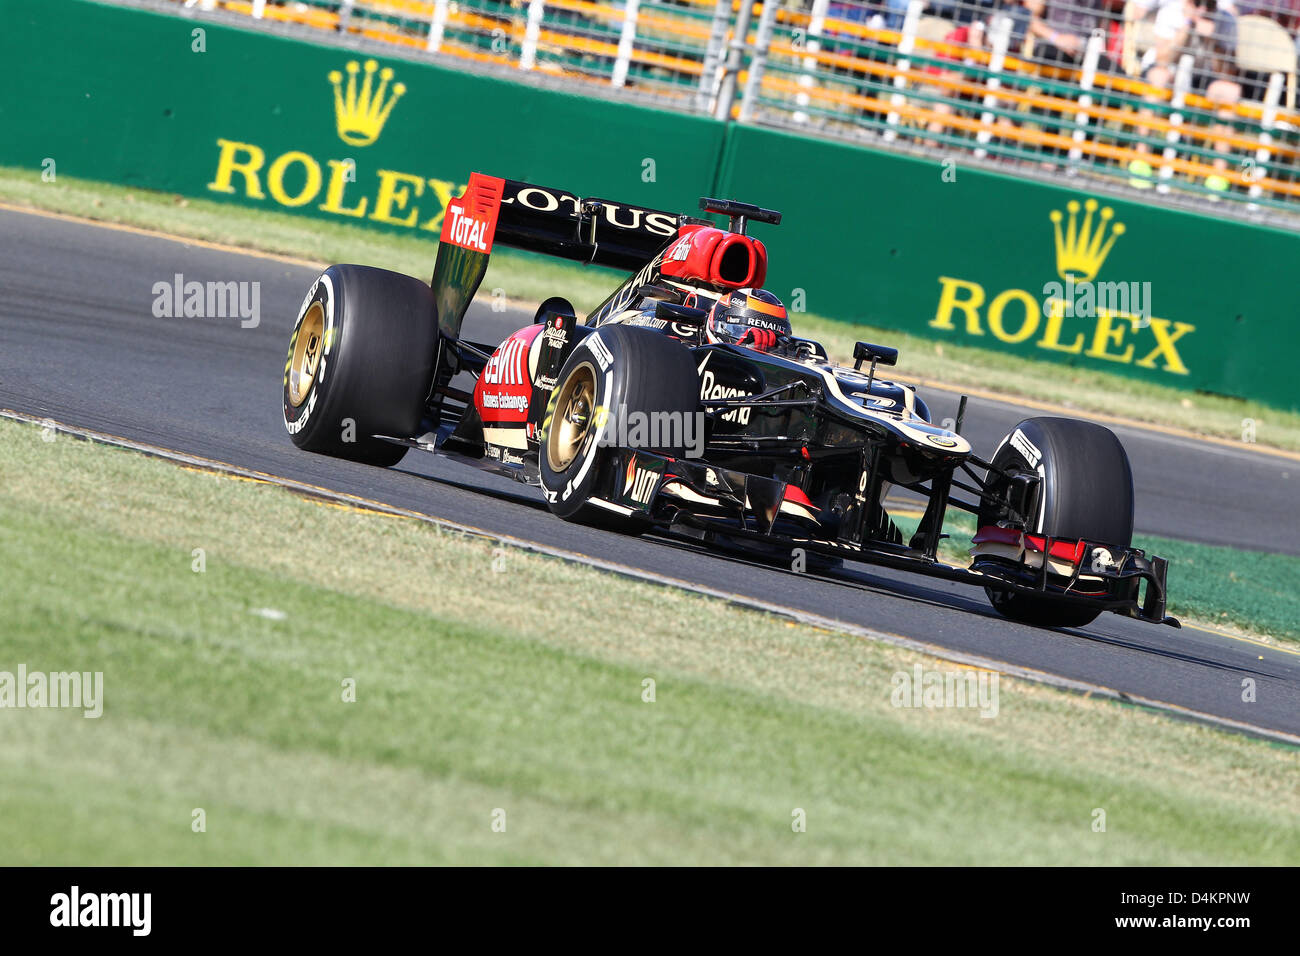 Romain Grosjean Lotus F1 Team Stock Photos & Romain Grosjean Lotus